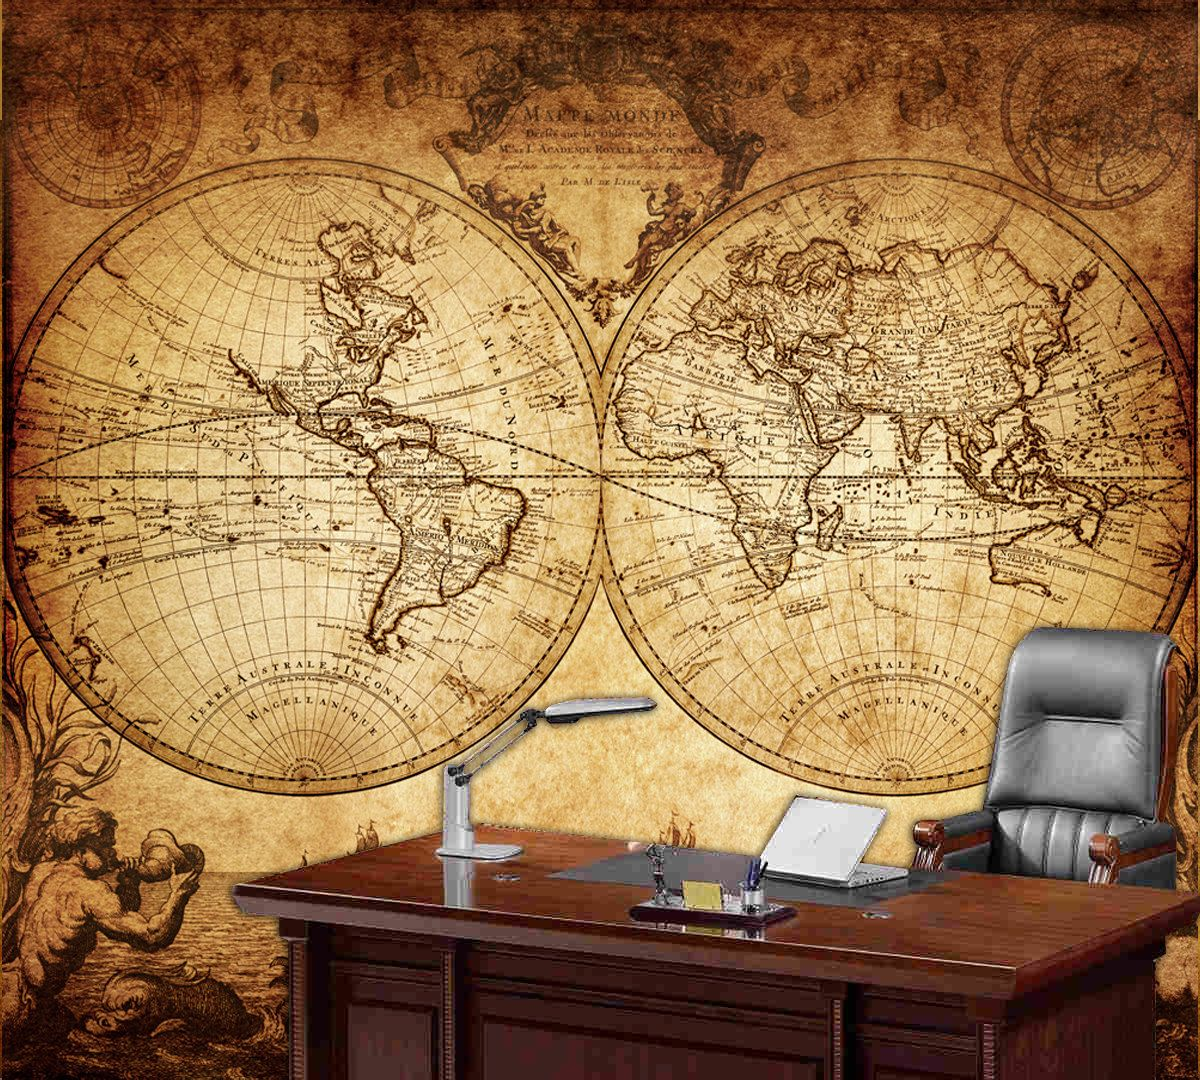 World map wall mural vintage old map of the world 1733 world map wall mural vintage old map of the world by styleawall 48000 gumiabroncs Gallery